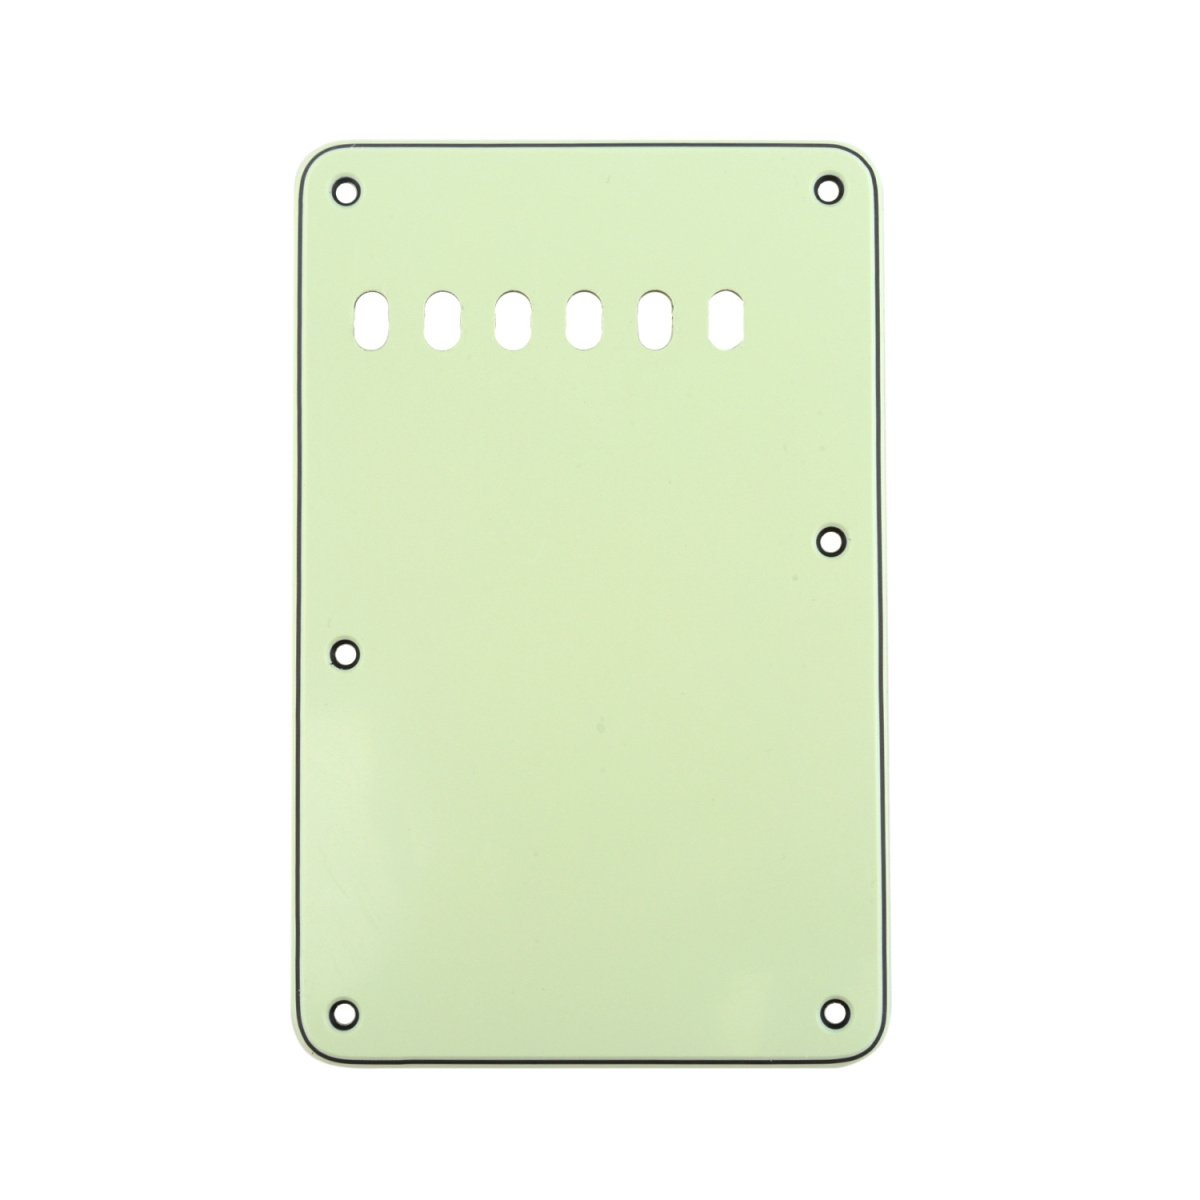 Musiclily 6 Hole Guitar Strat Back Plate Vintage Style Tremolo Backplate for Fender USA//Mexican Made American Standard Stratocaster ST Modern Style Electric Guitar,3Ply White